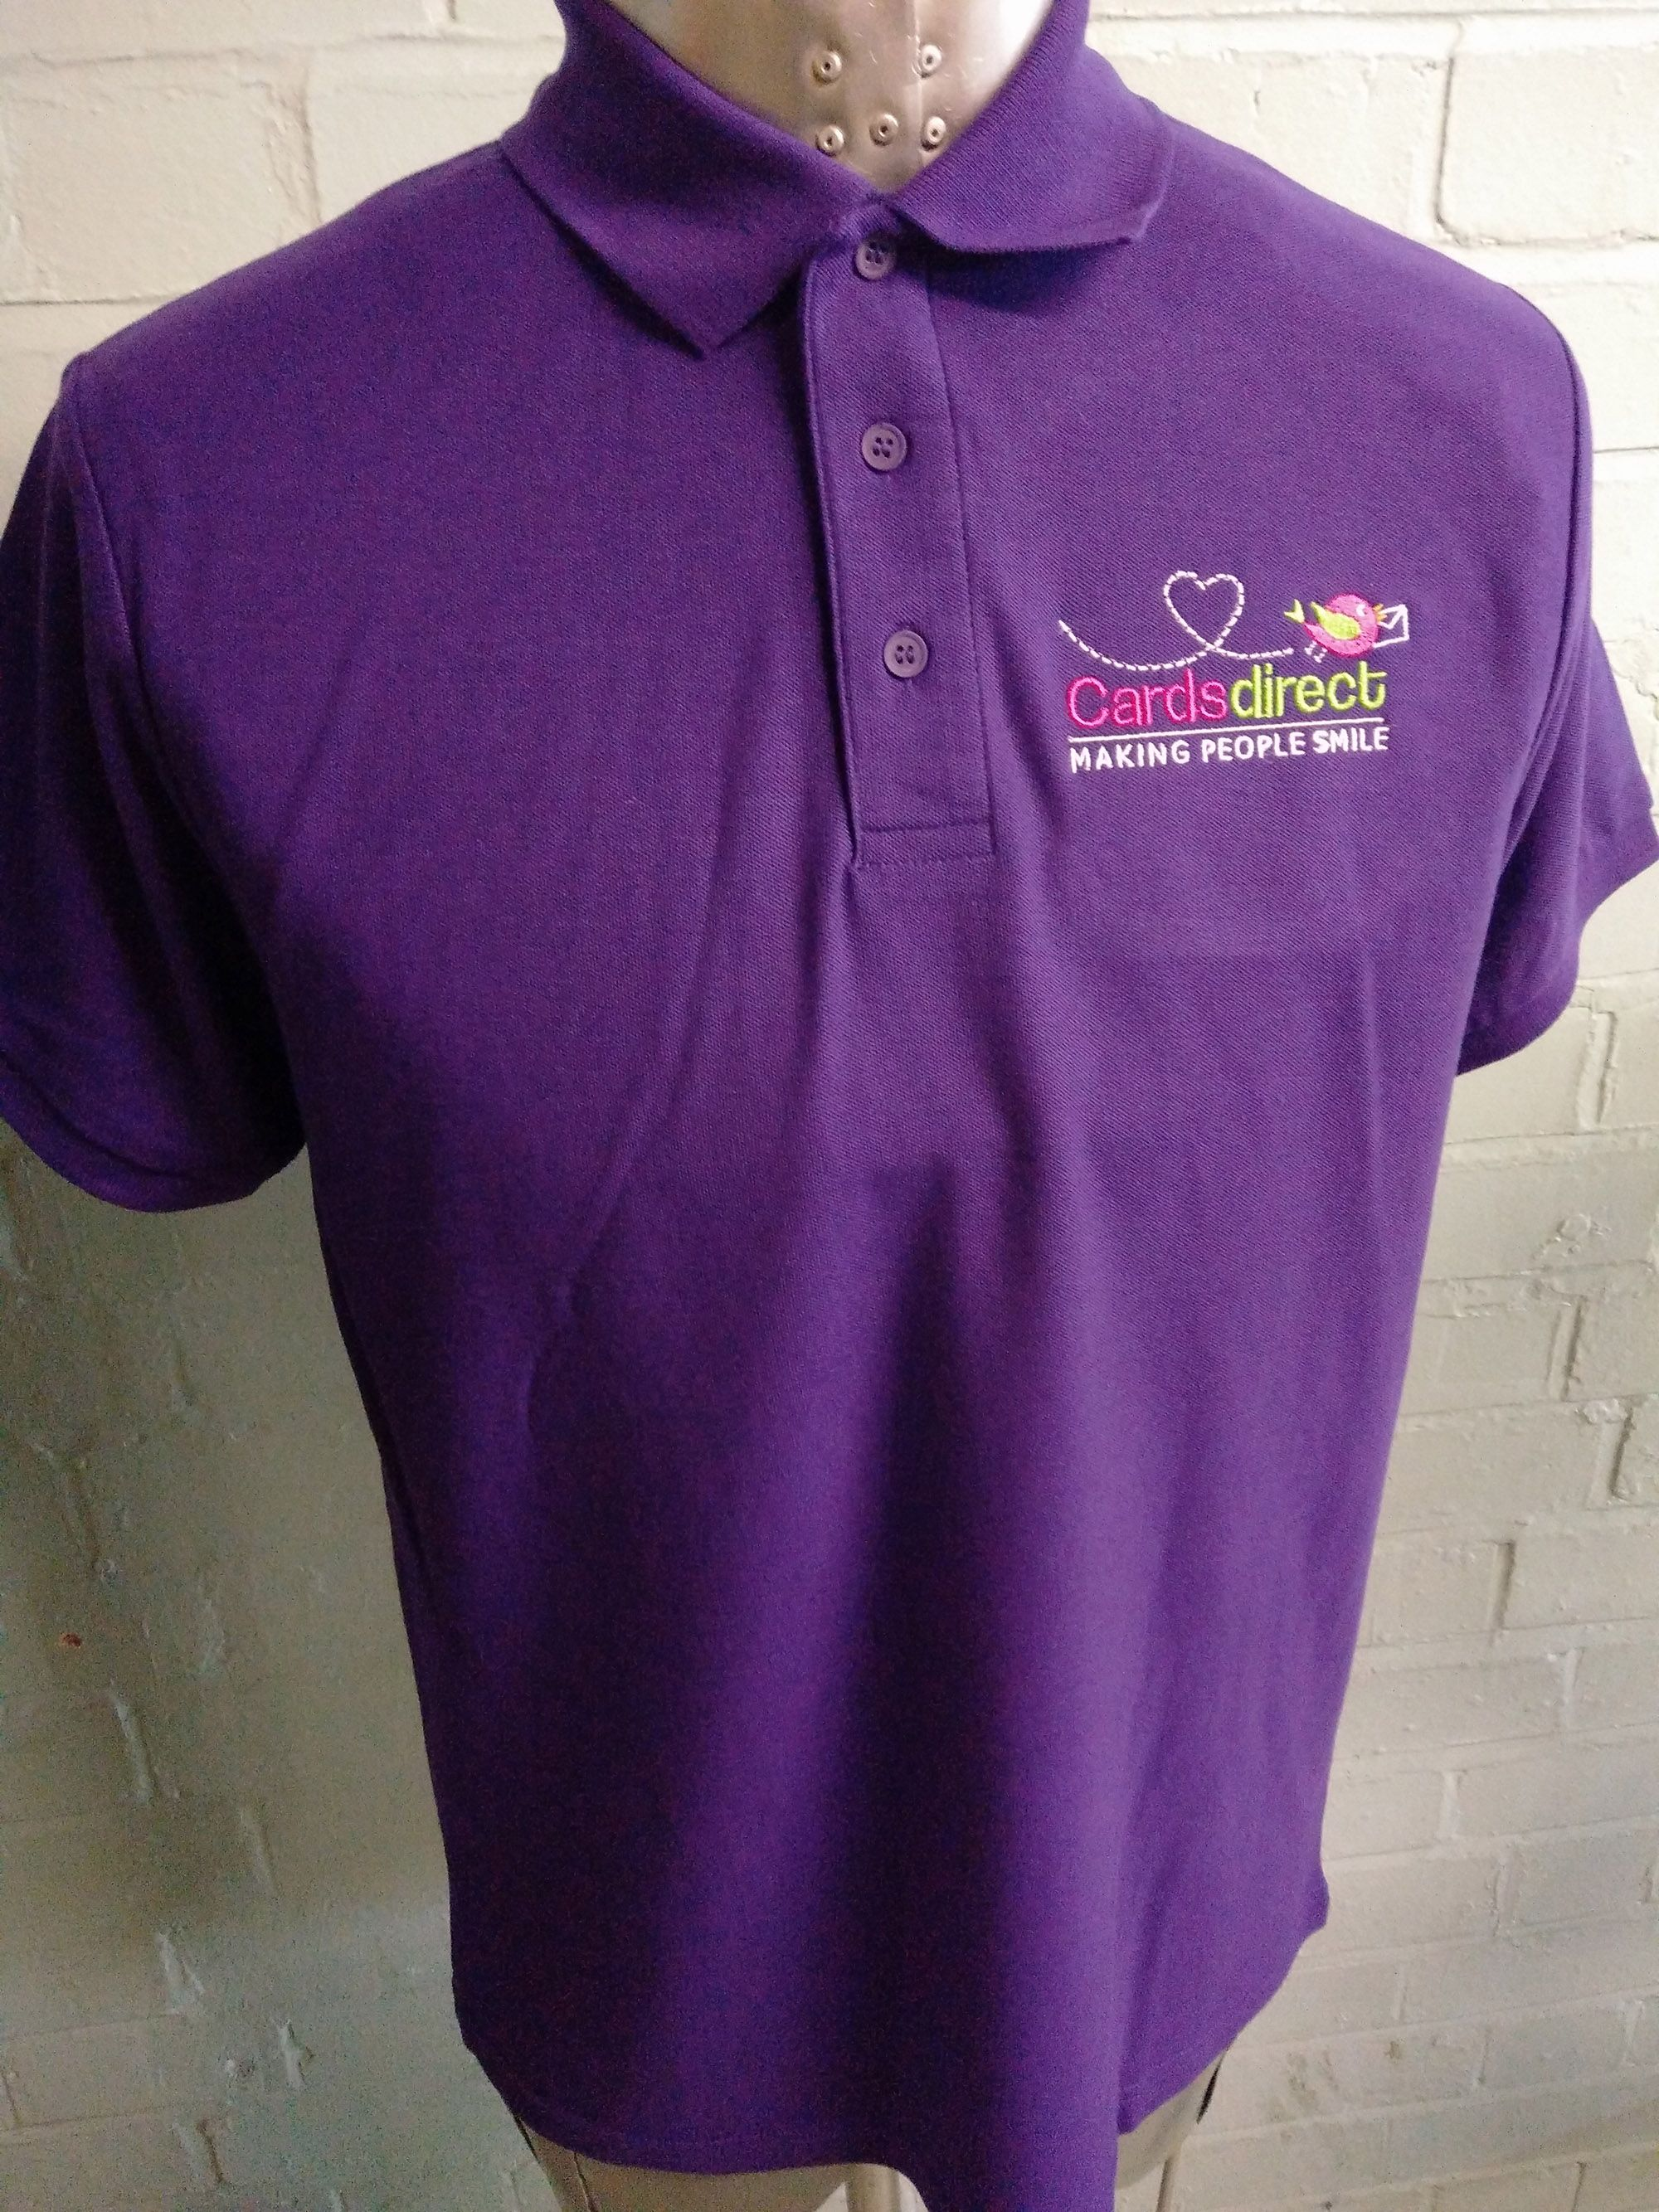 Bright Purple Polo T Shirts For Cards Direct With Custom Embroidered